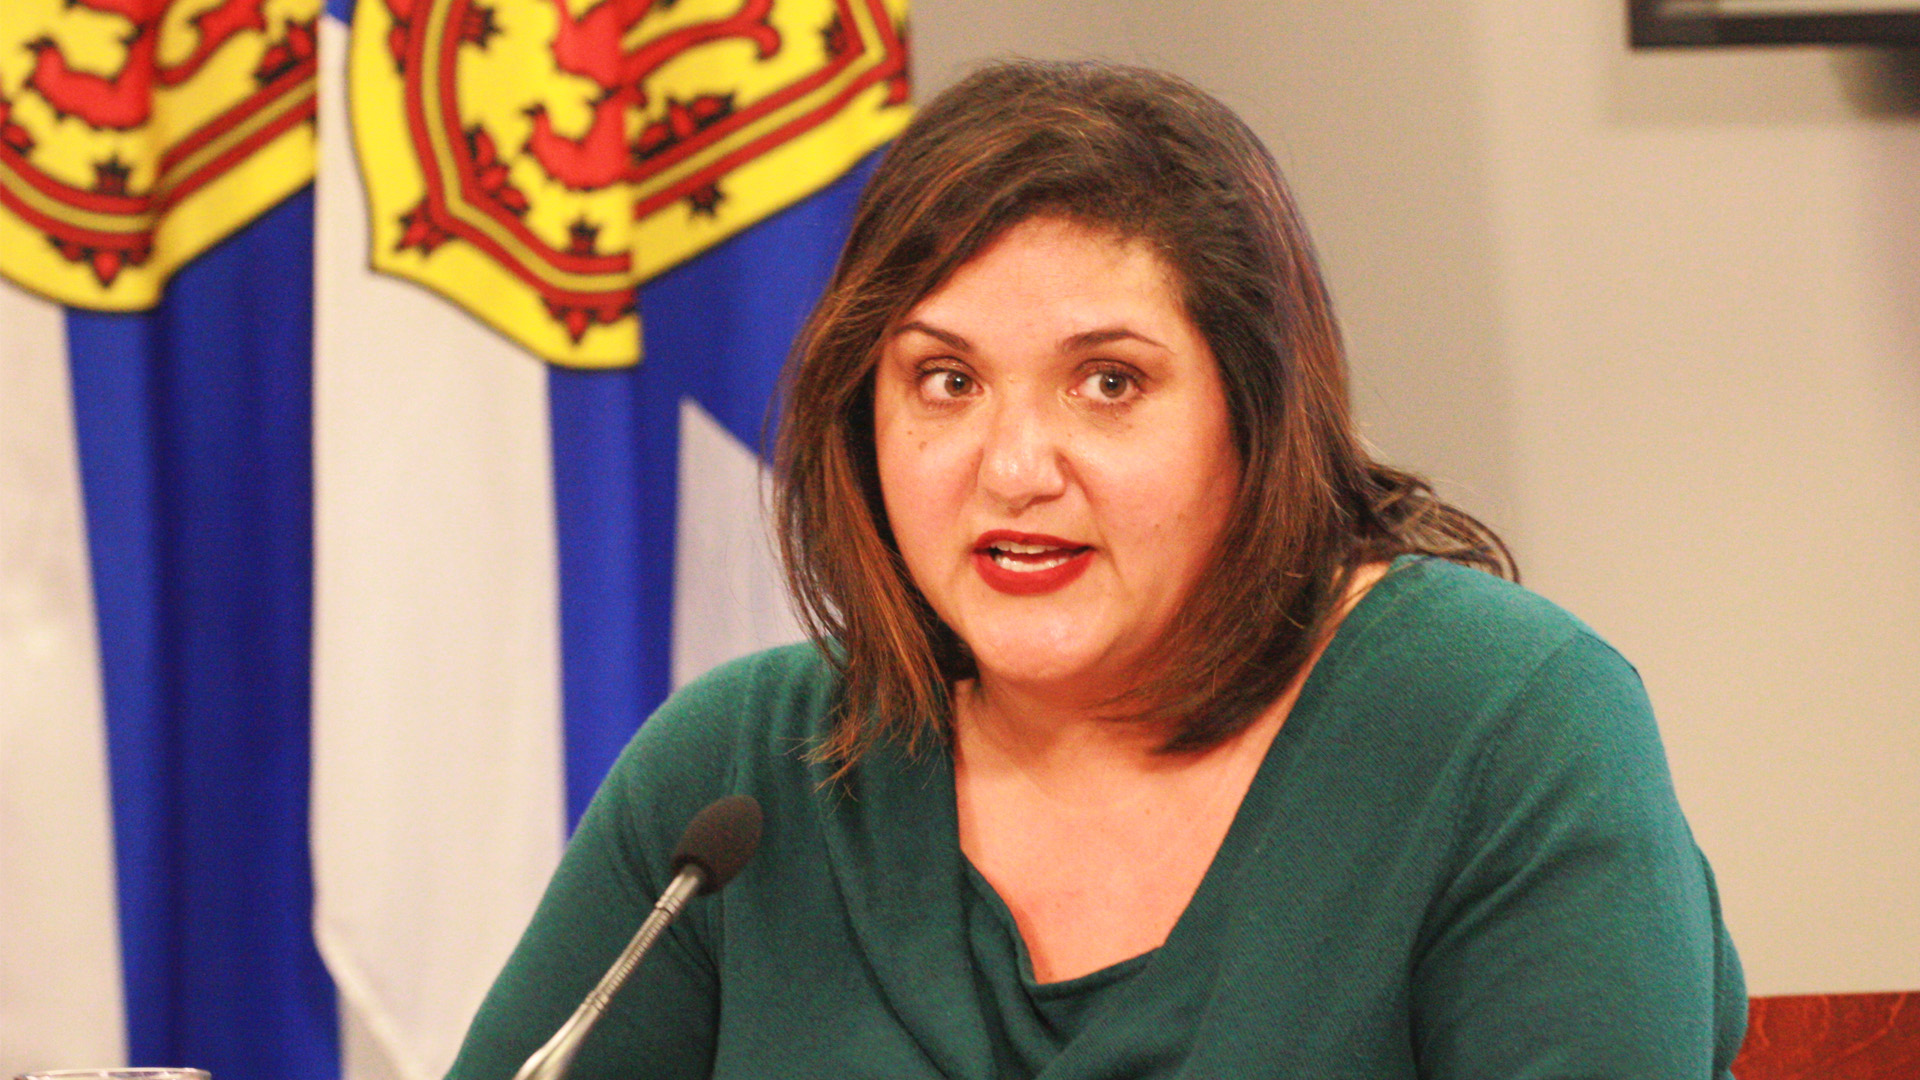 Minister of Internal Services Patricia Arab speaking at Tuesday's news conference.